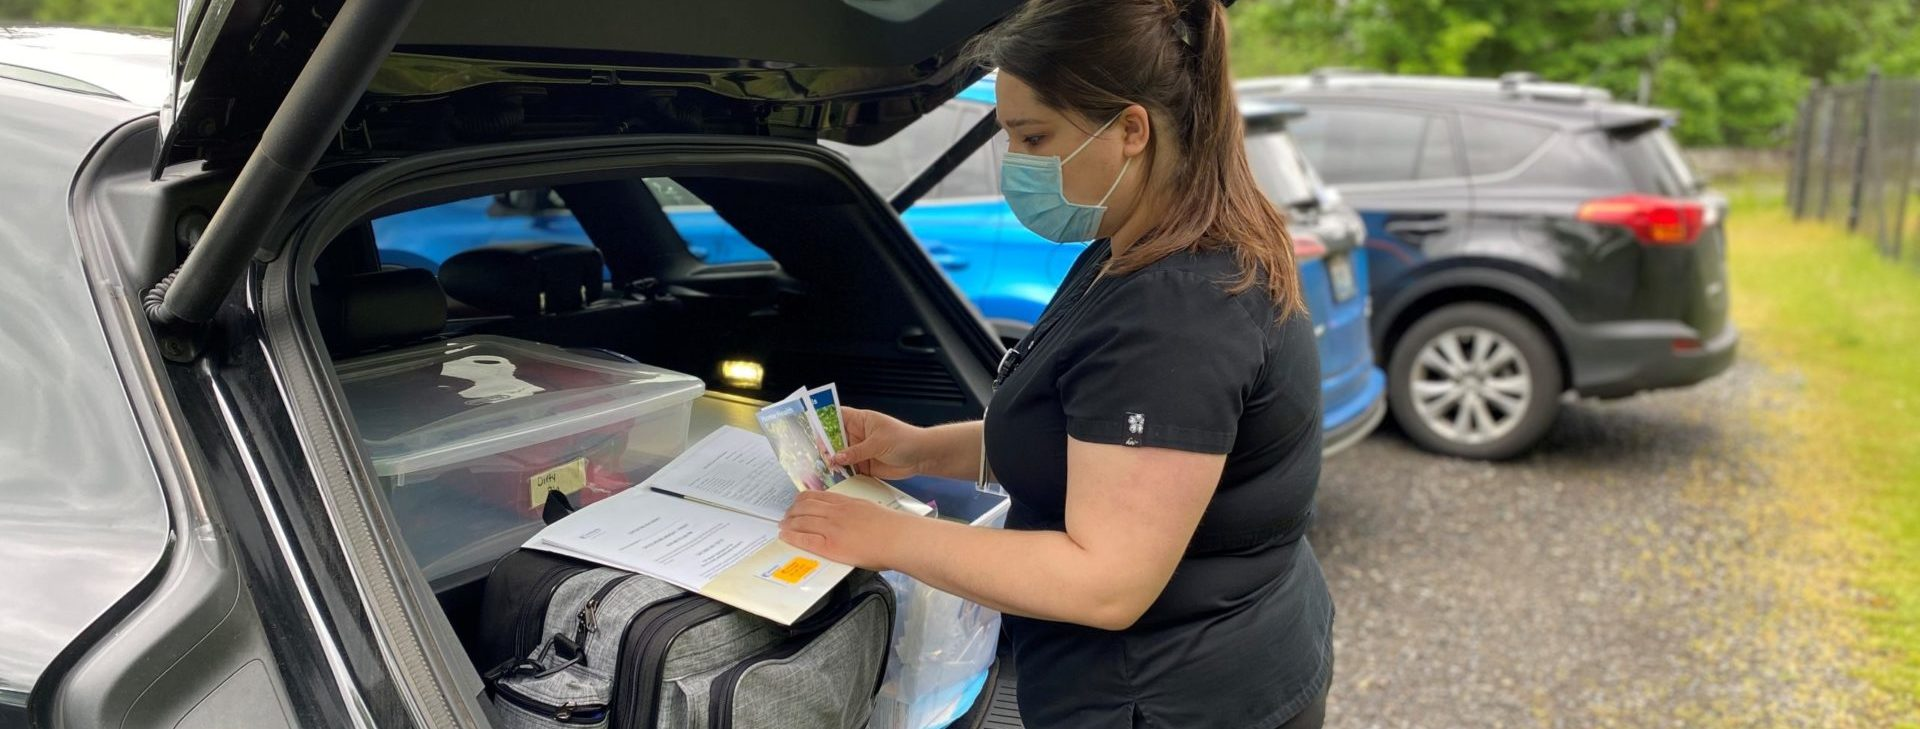 Home health nurse preparing her medical supplies in the back of her SUV